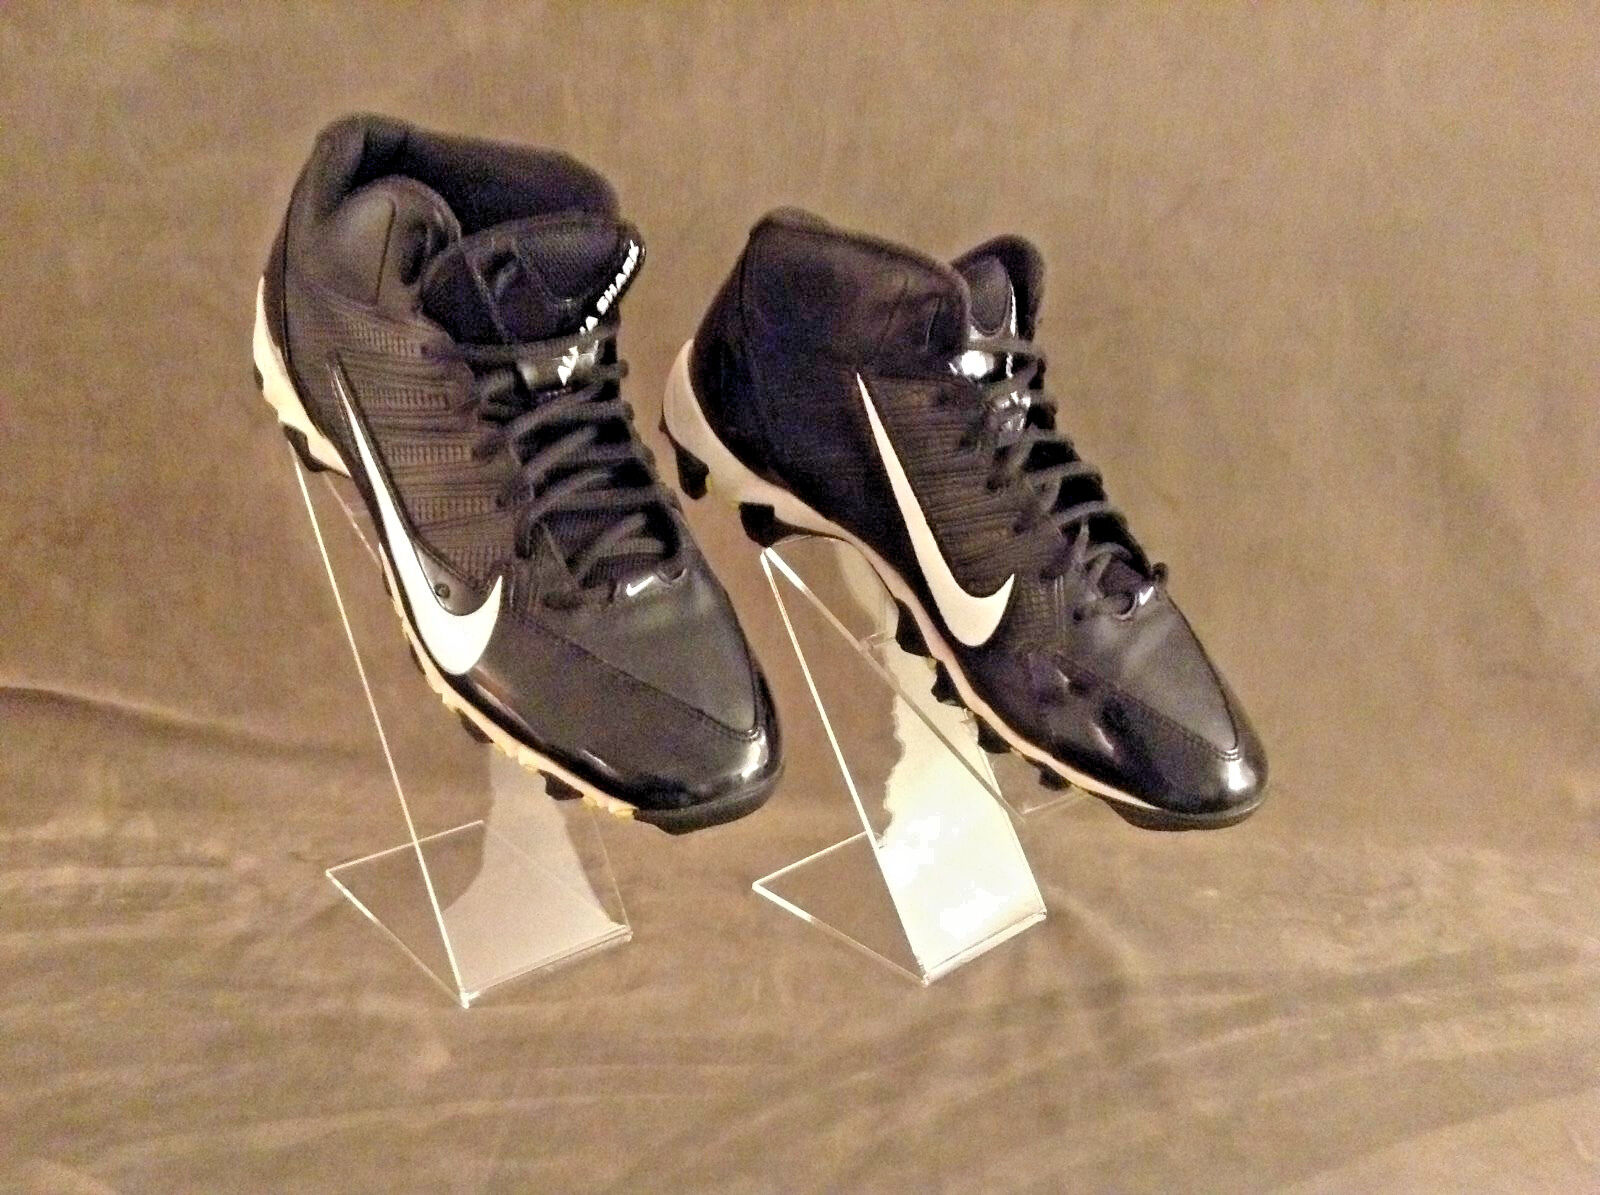 homme femme 642770-001 642770-001 642770-001 nike alpha requin taille 9 louis, 5619c9